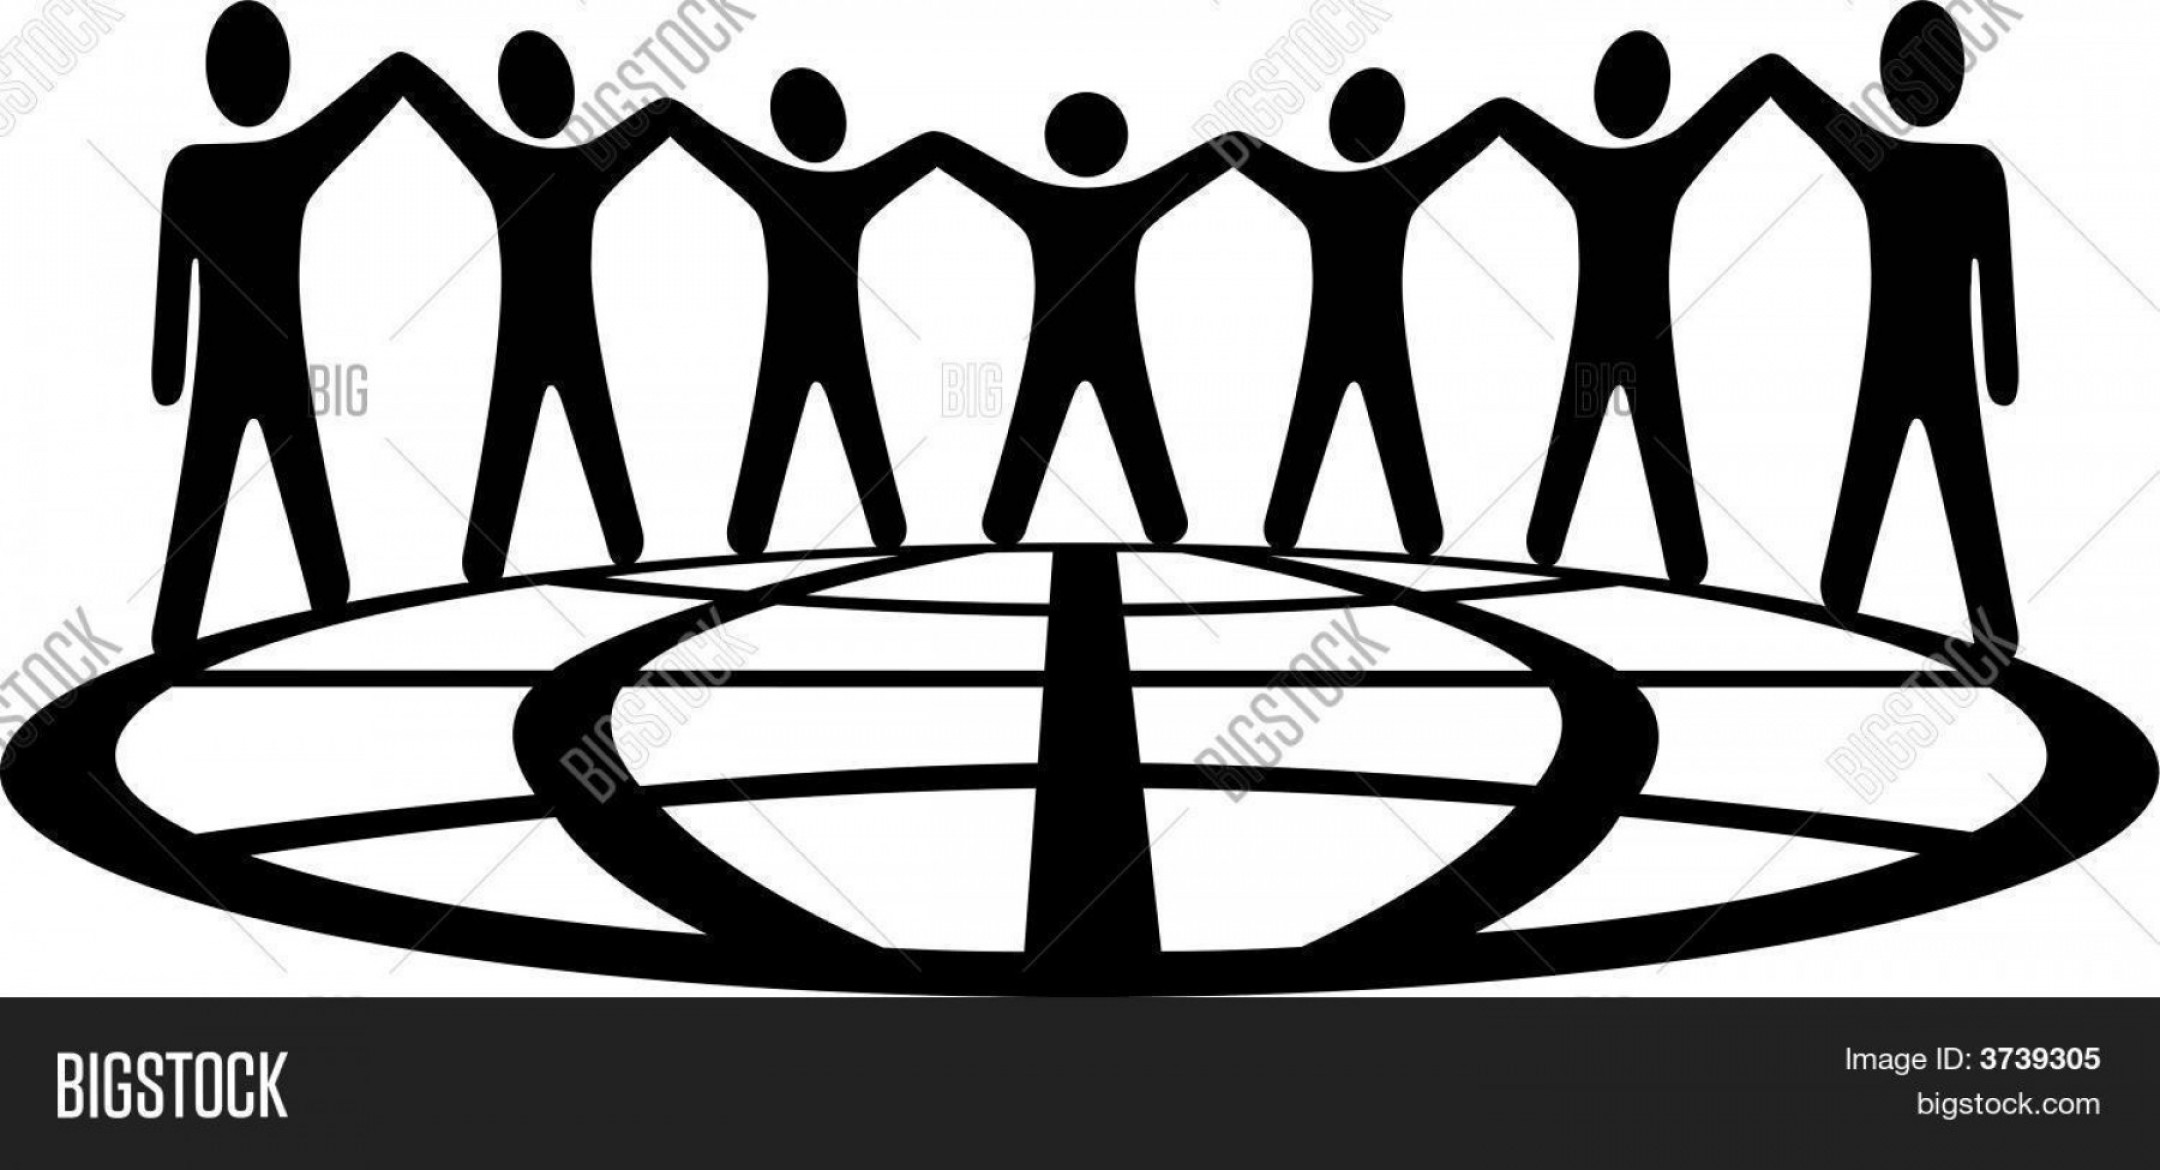 Holding Hands Up Silhouette Vector: Stock Vector Global People Hold Hands And Arms Up On Globe